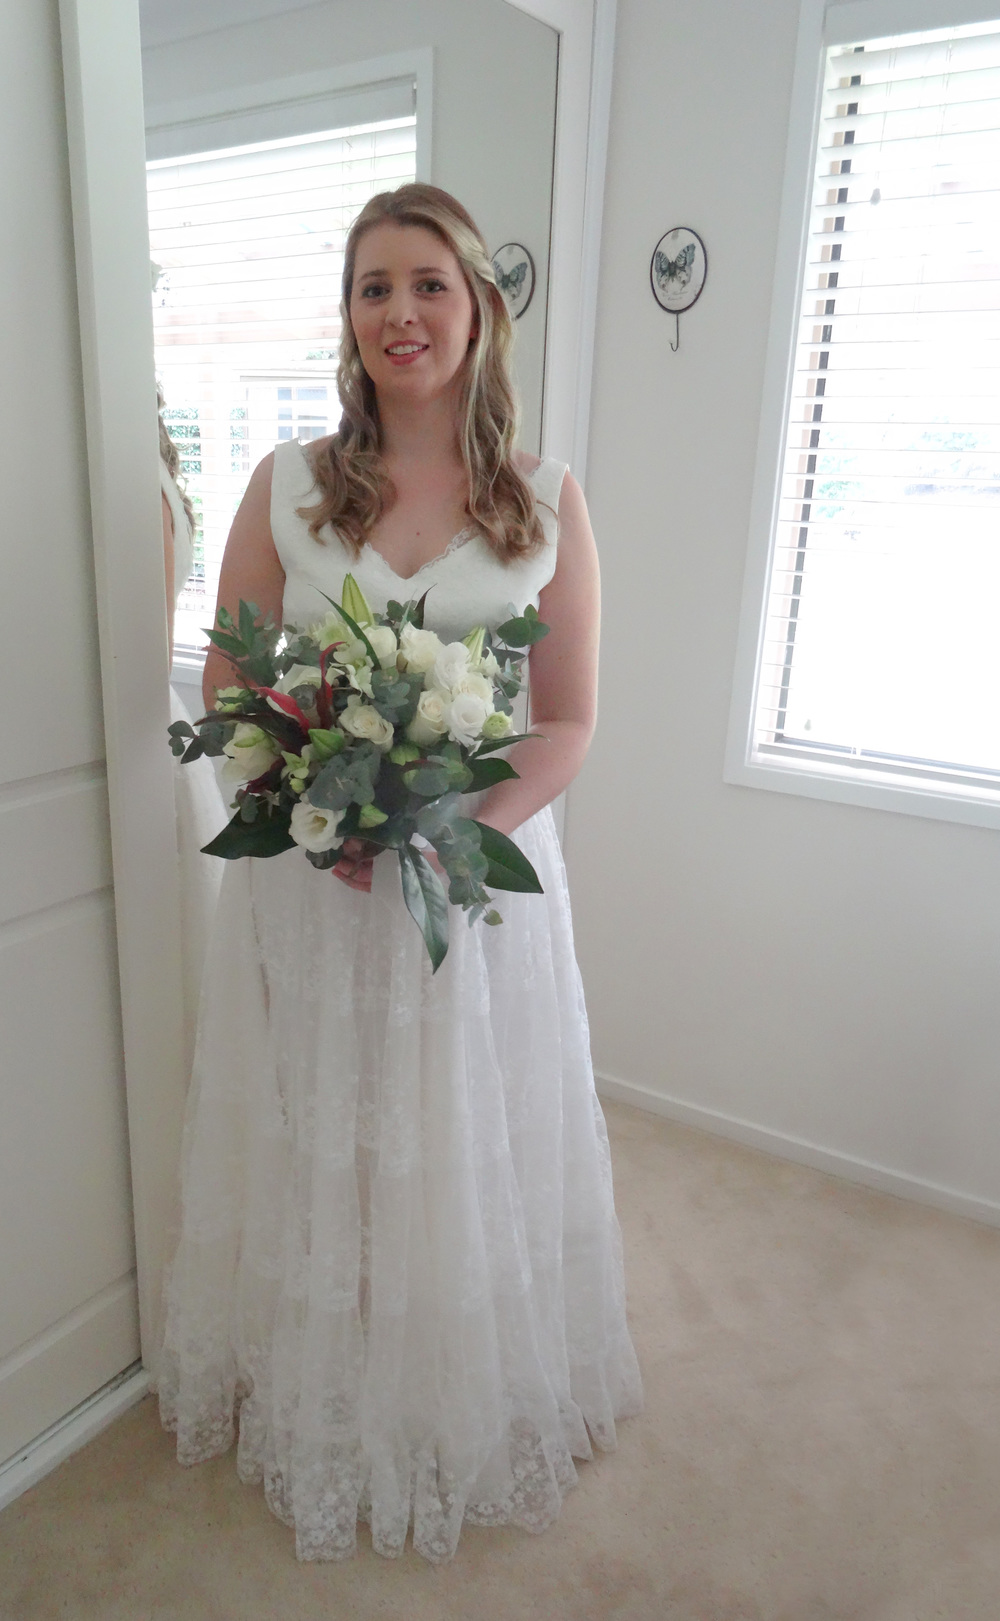 Mother's vintage wedding dress re-made to suit daughter